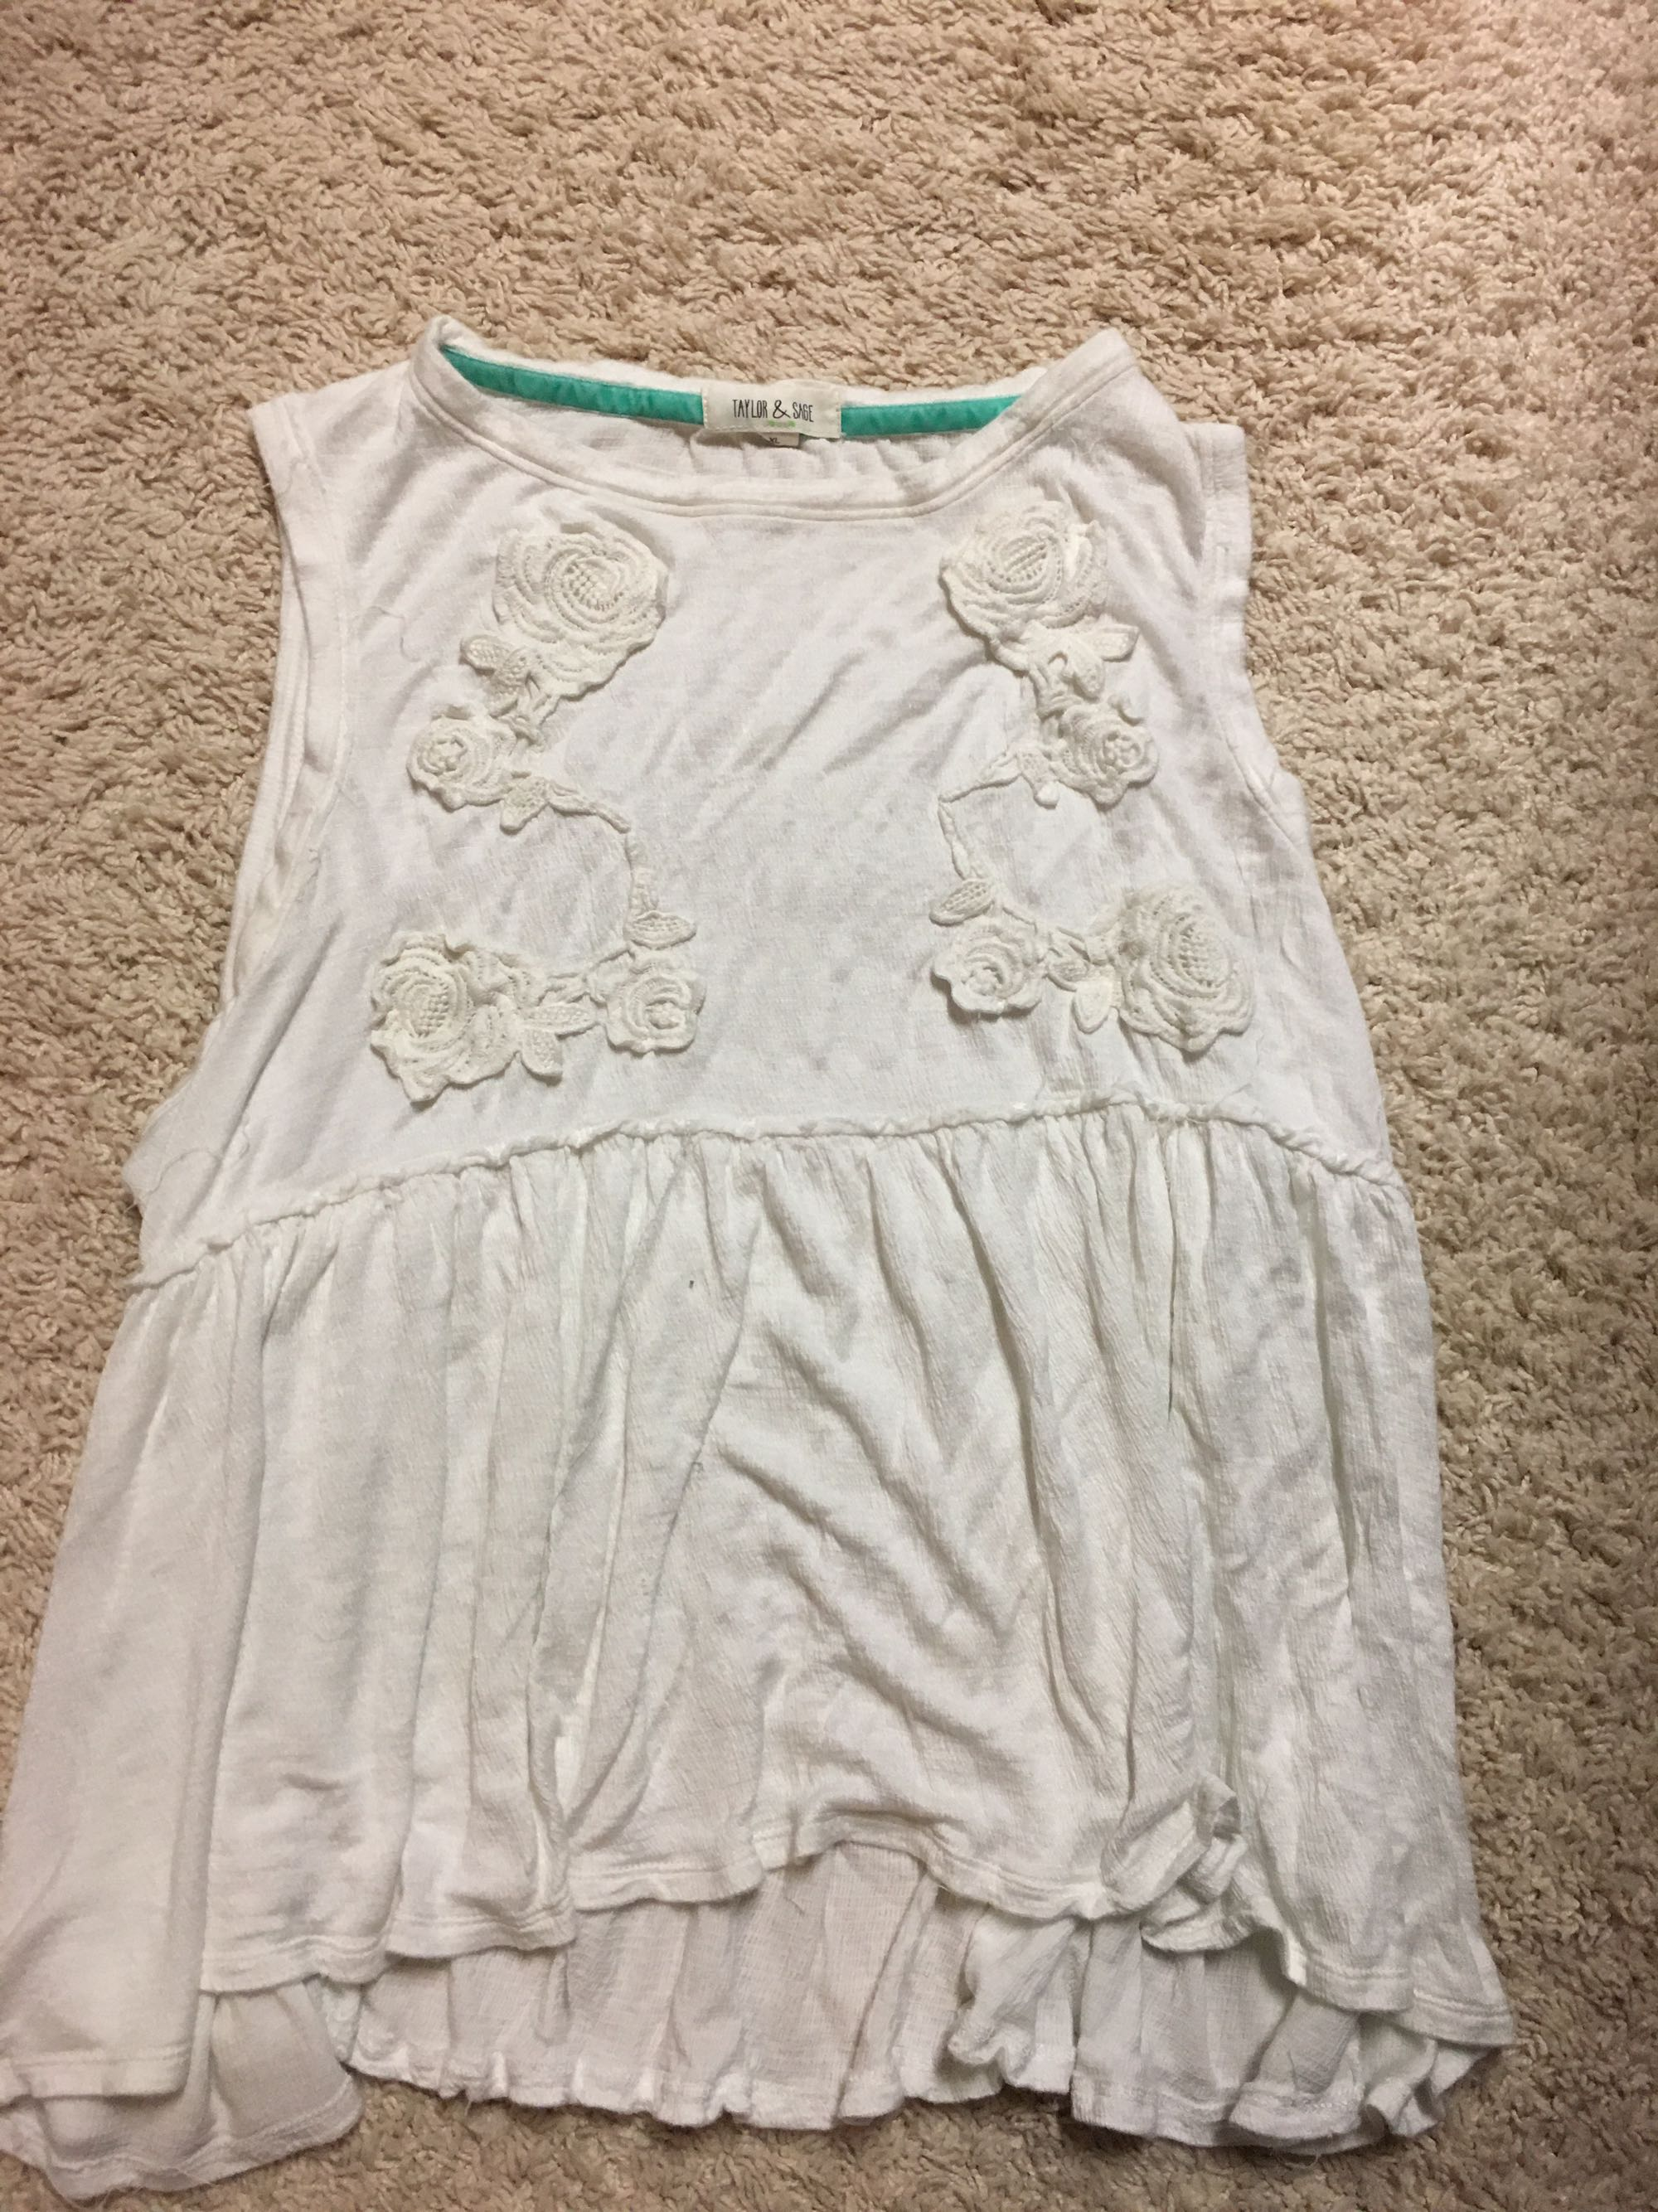 Taylor and sage sz xl flowy top